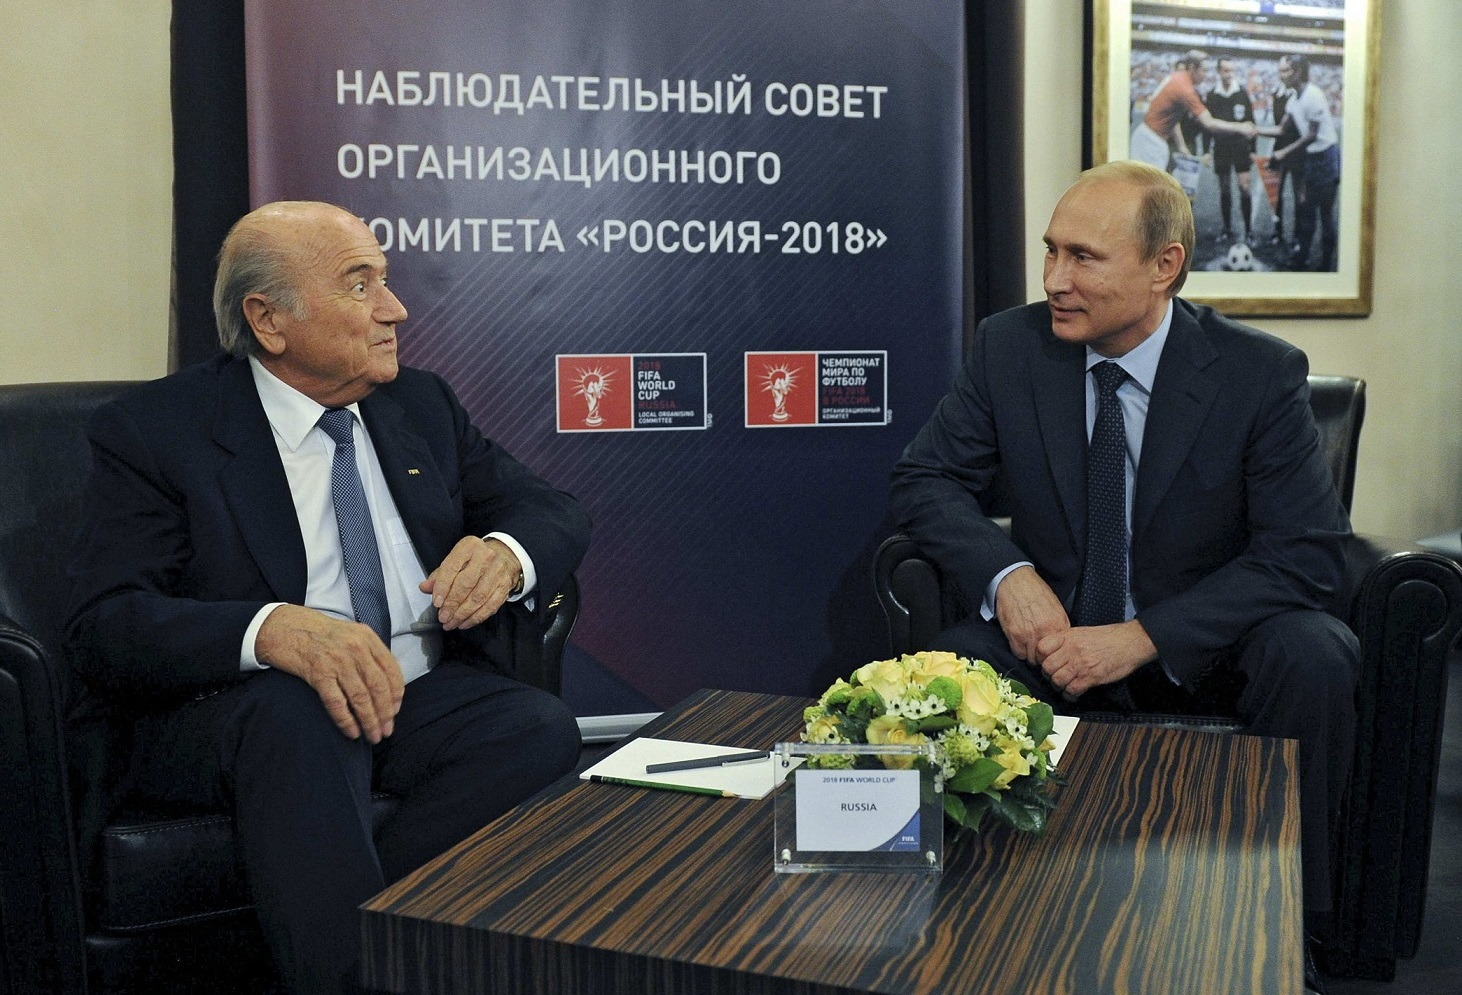 FIFA President Blatter talks with Russia's President Putin during a meeting in Moscow